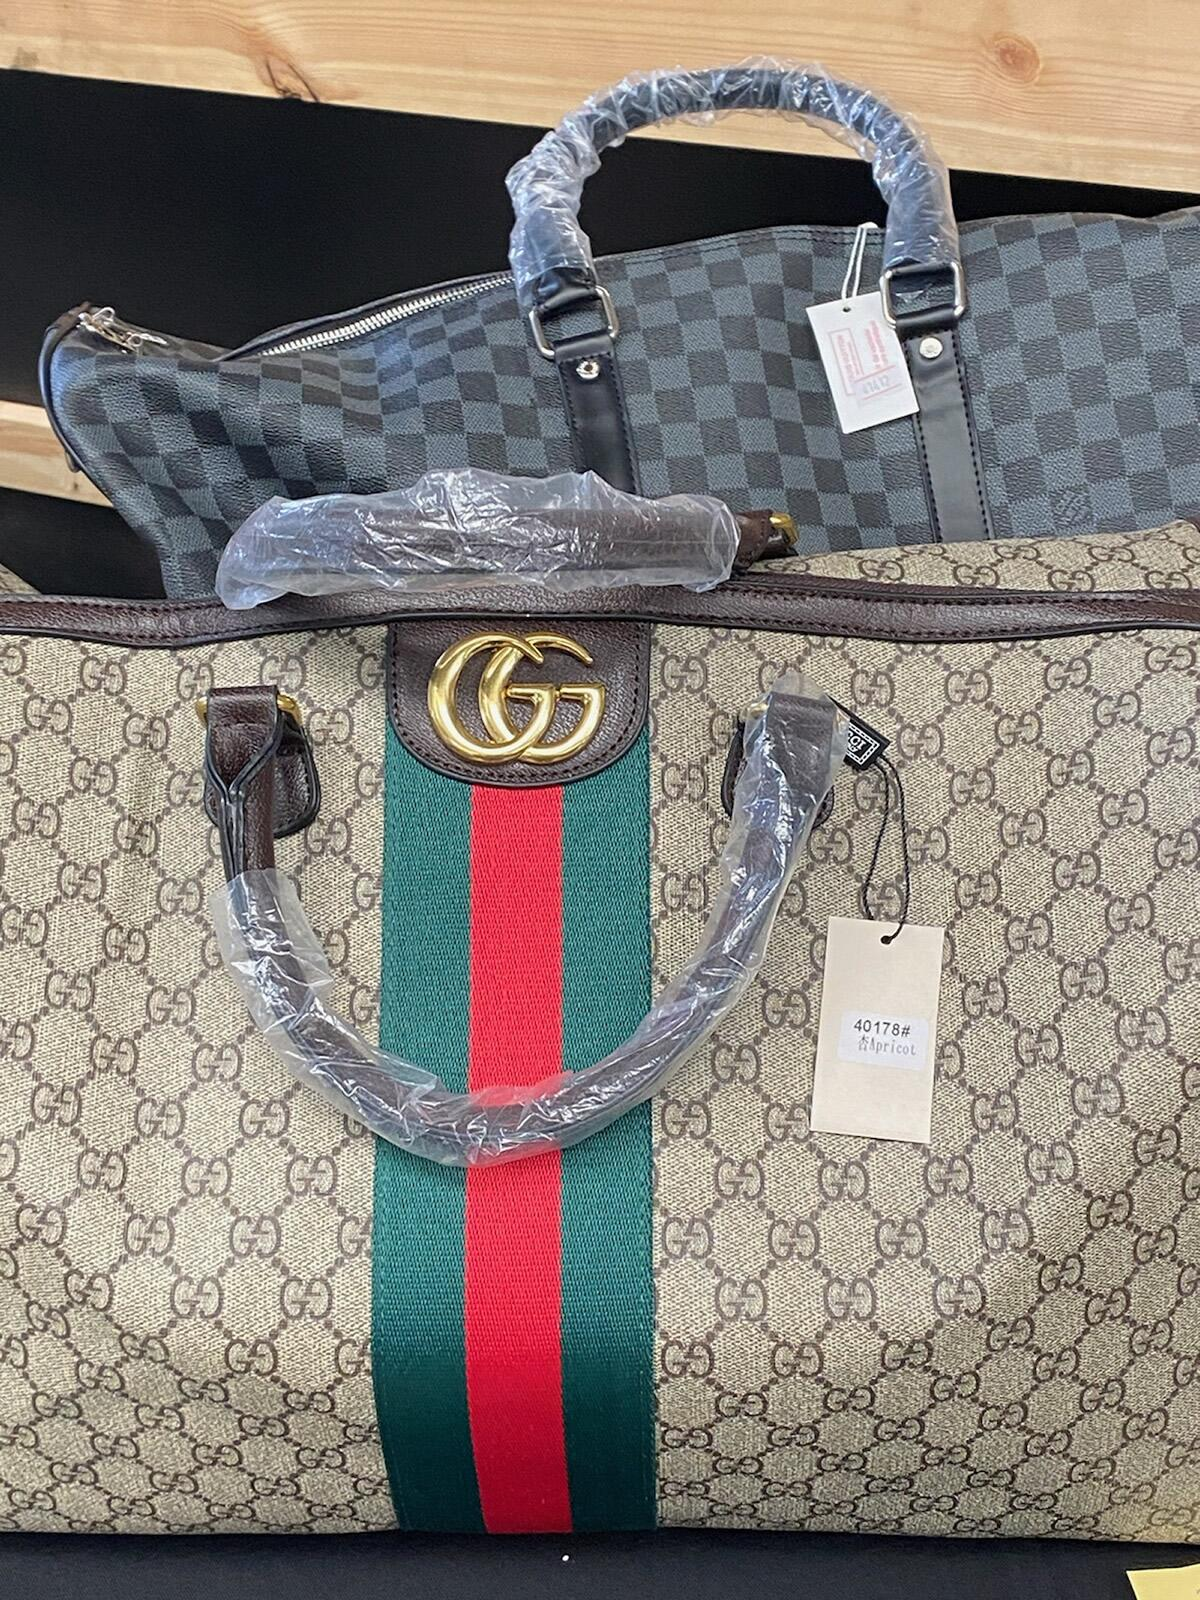 Over 1,000 items were confiscated, including several boxes of luxury designer goods such as high-end purses, caps, shoes and sunglasses.